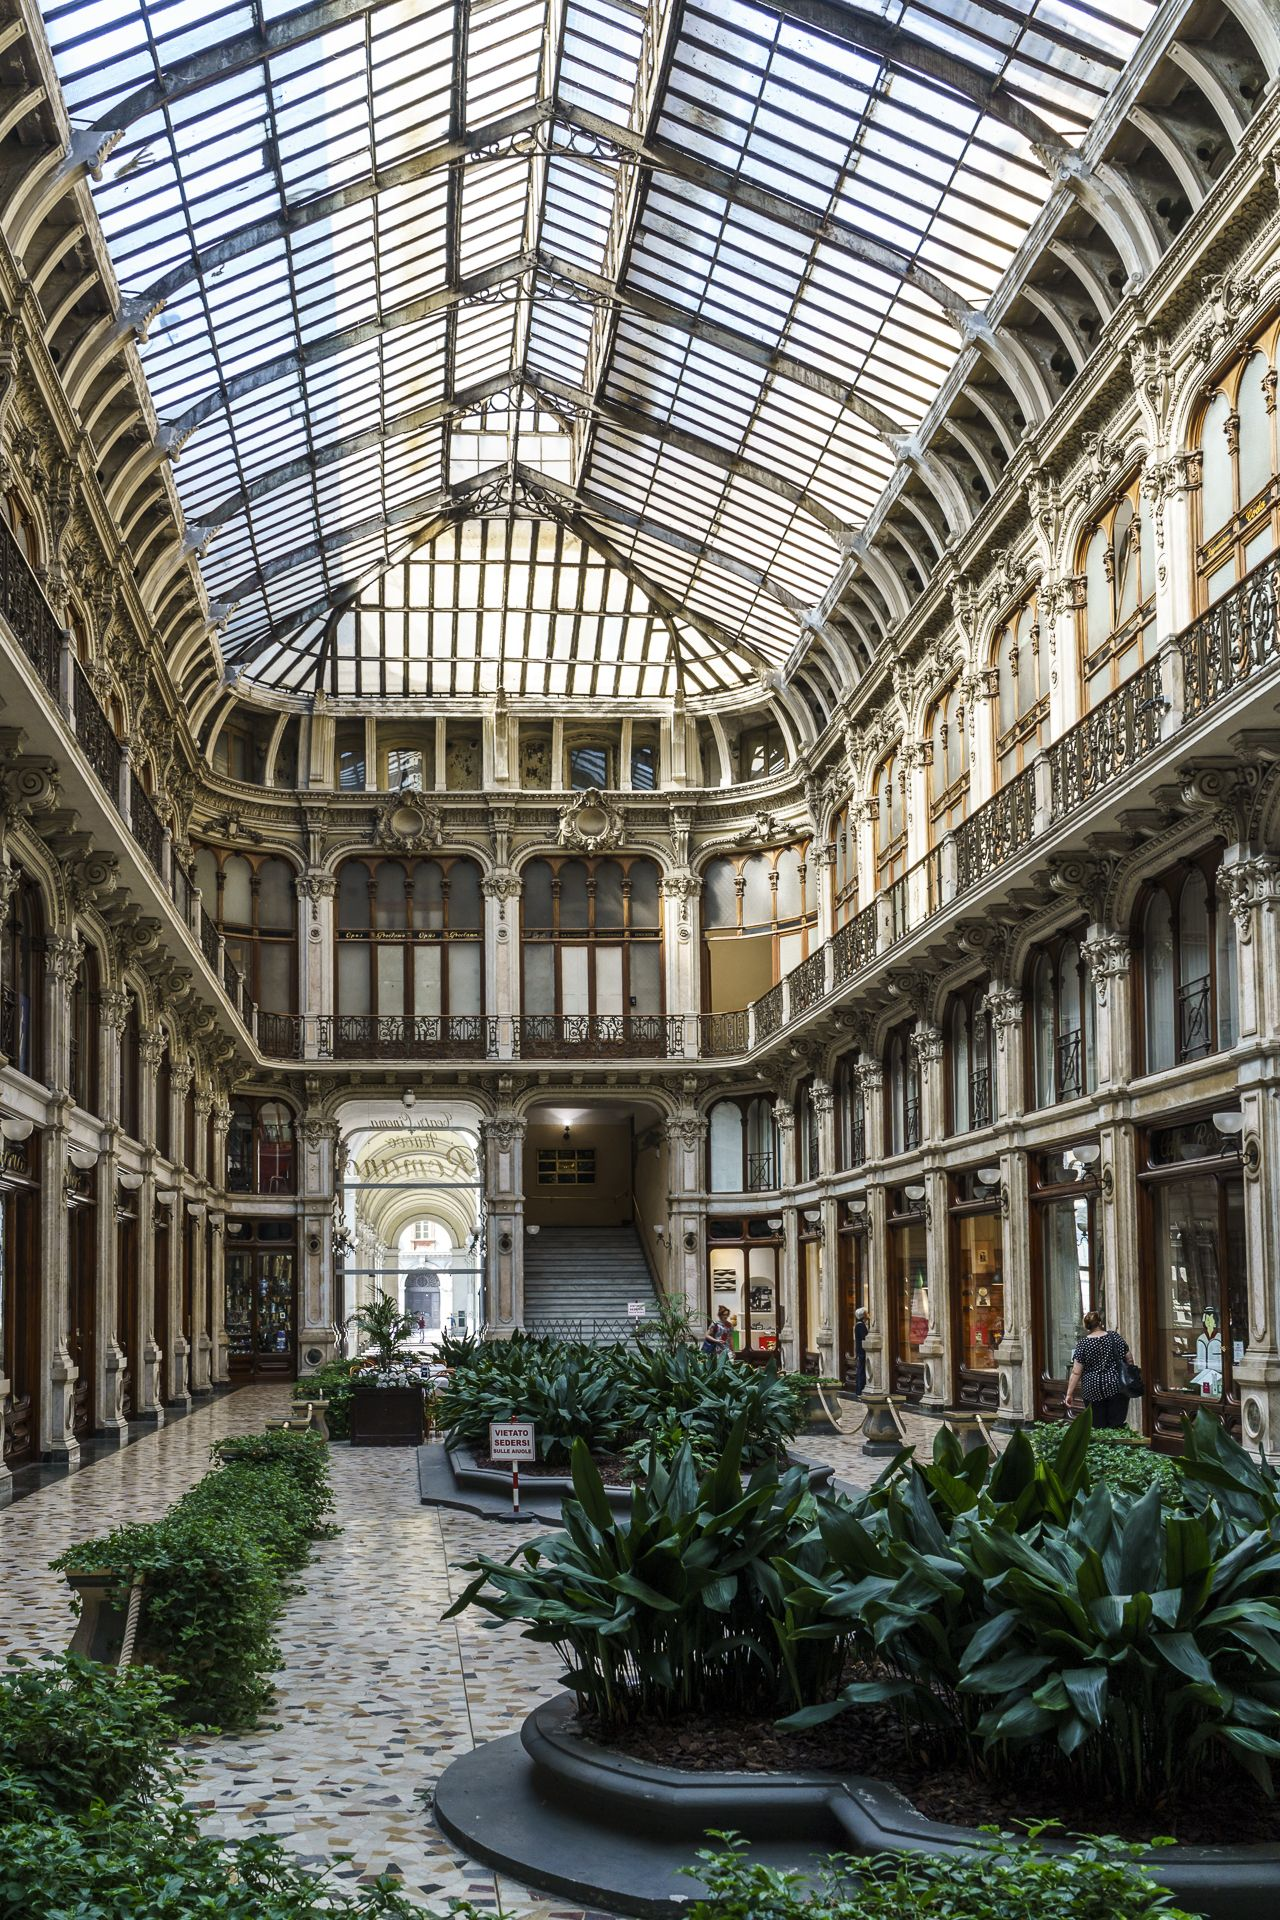 Amazing gallery in Turin